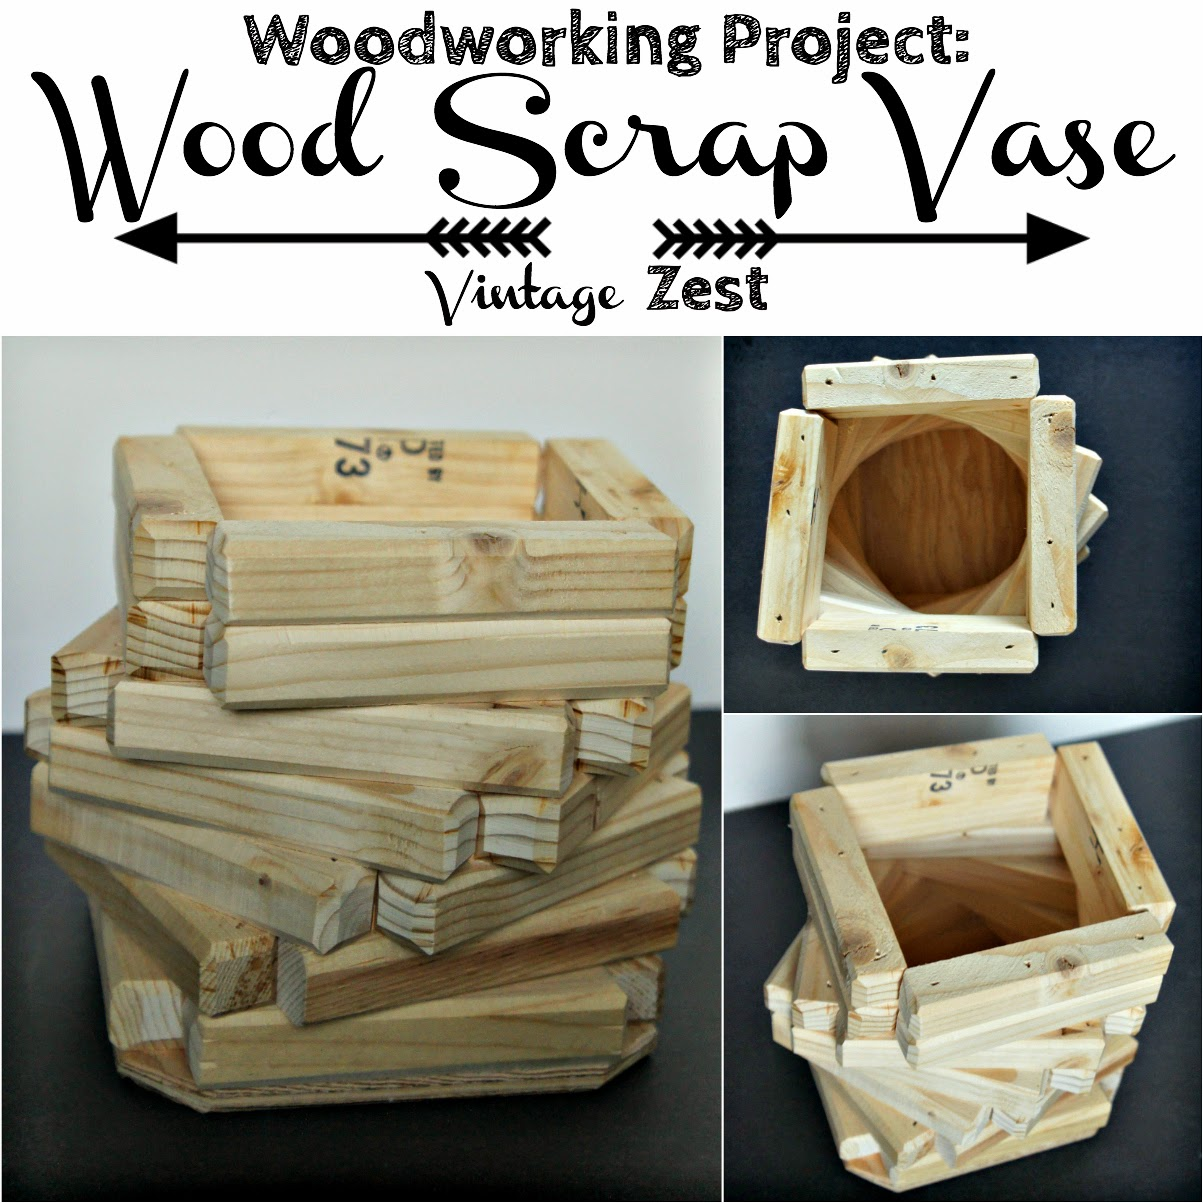 Project #0: Wood Scrap Vase on Diane's Vintage Zest!